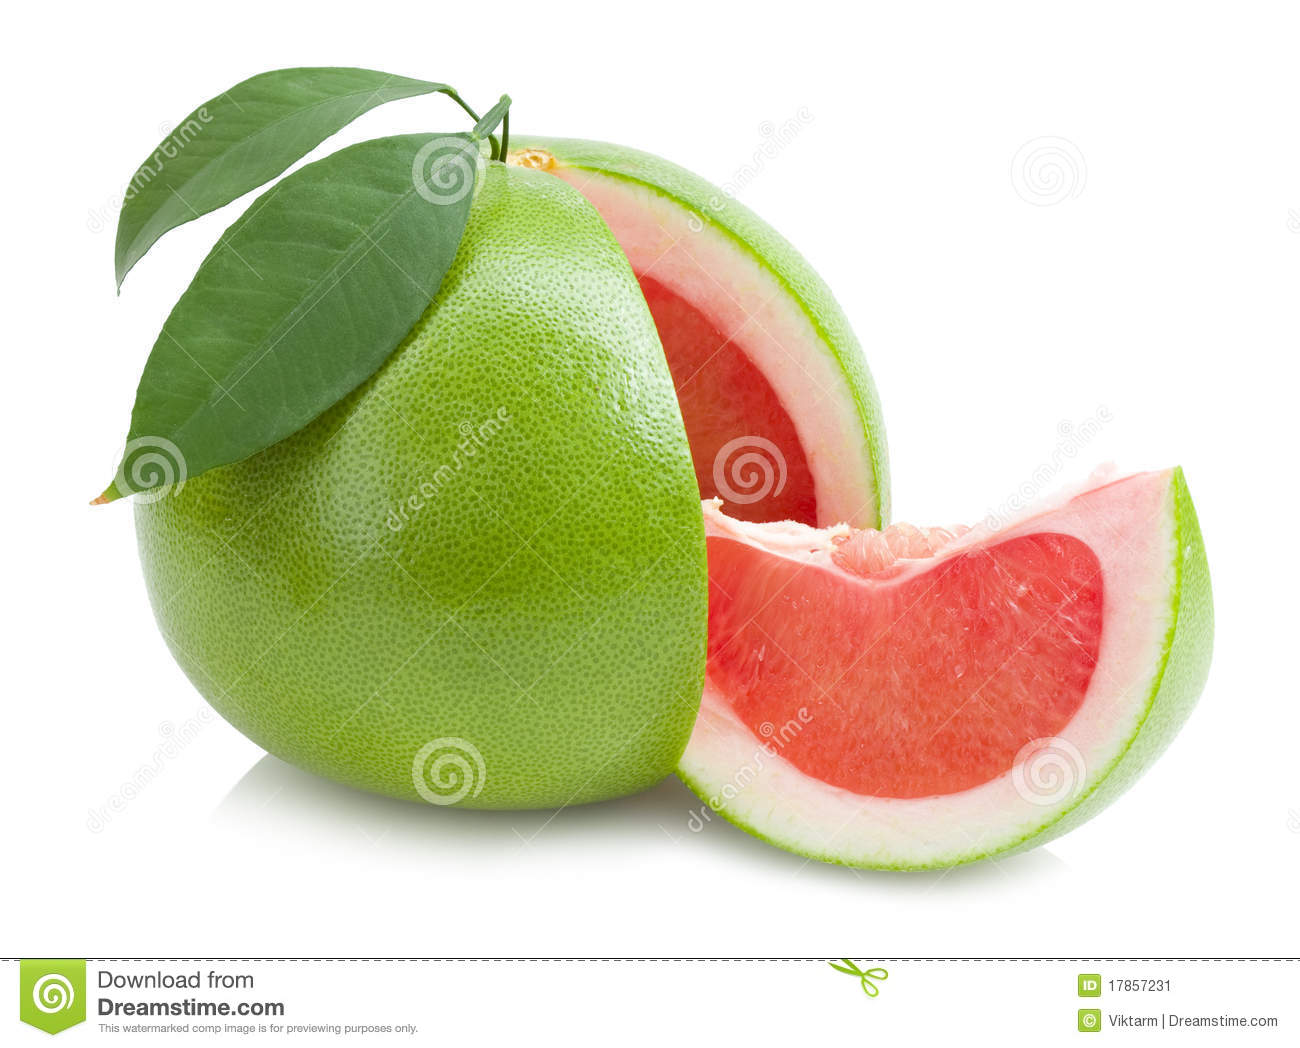 Red Pomelo Stock Image - Image: 17857231